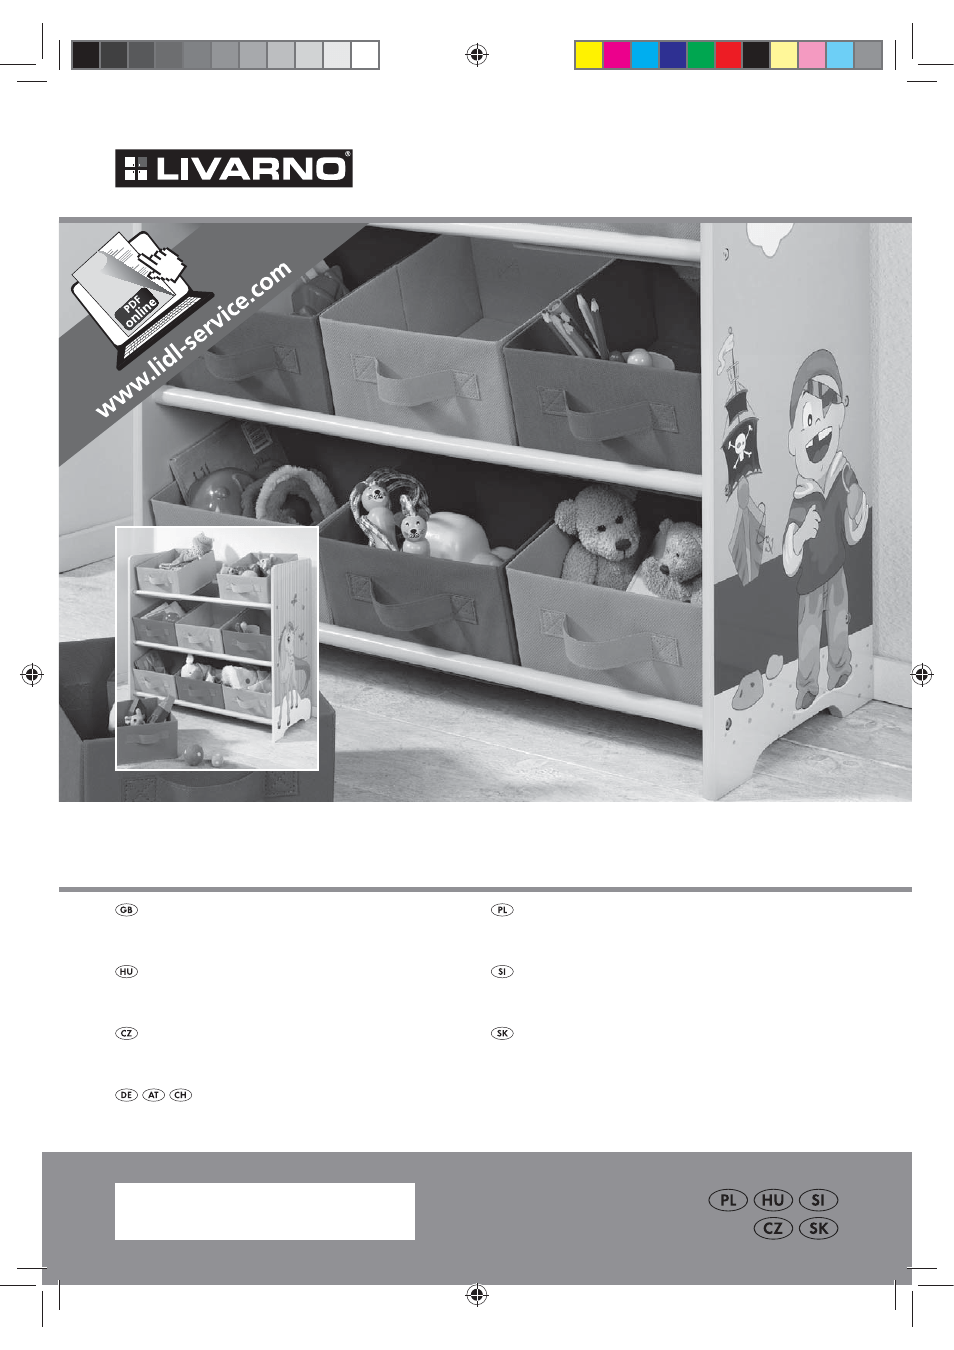 Livarno Kinderregal Livarno Z31593a Z31593b User Manual 12 Pages